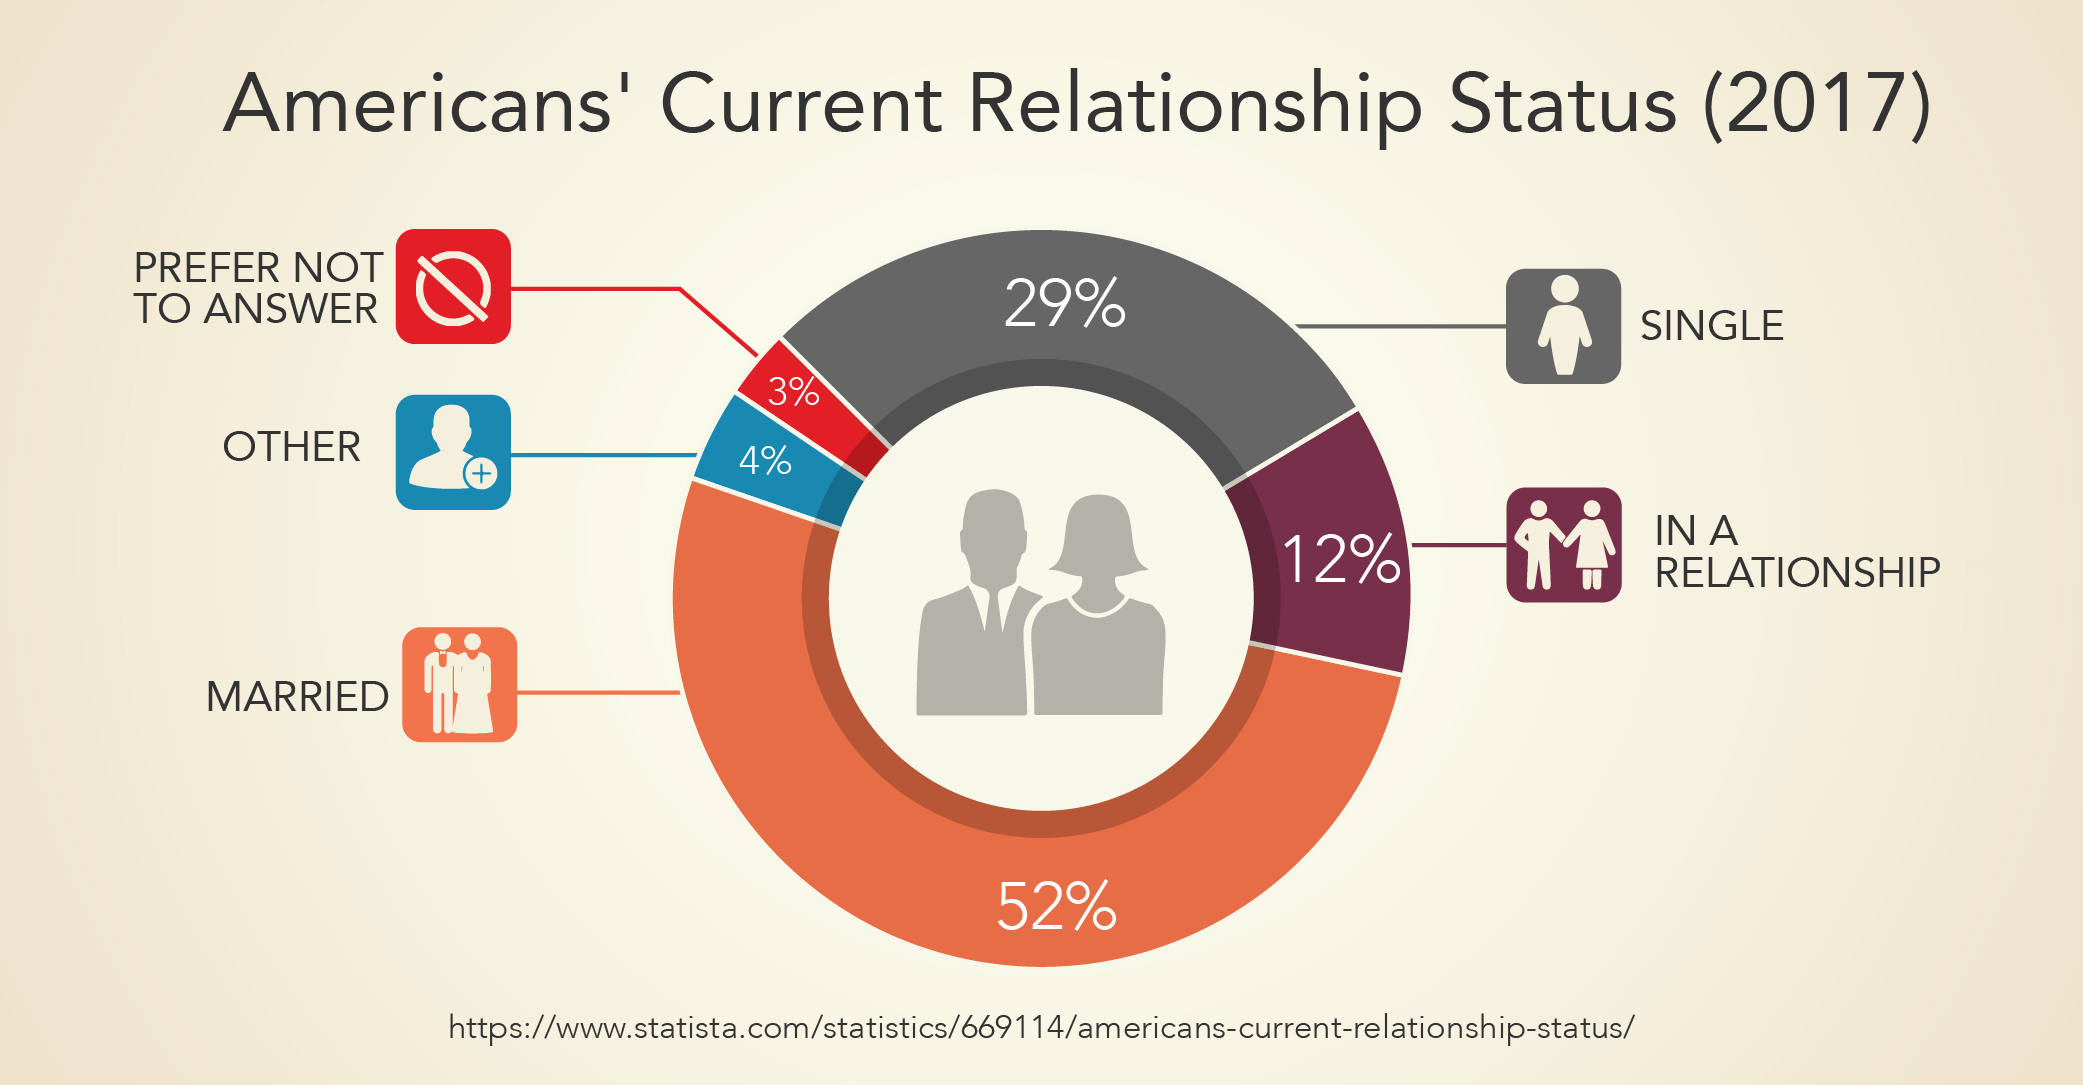 Americans' Current Relationship Status (2017)